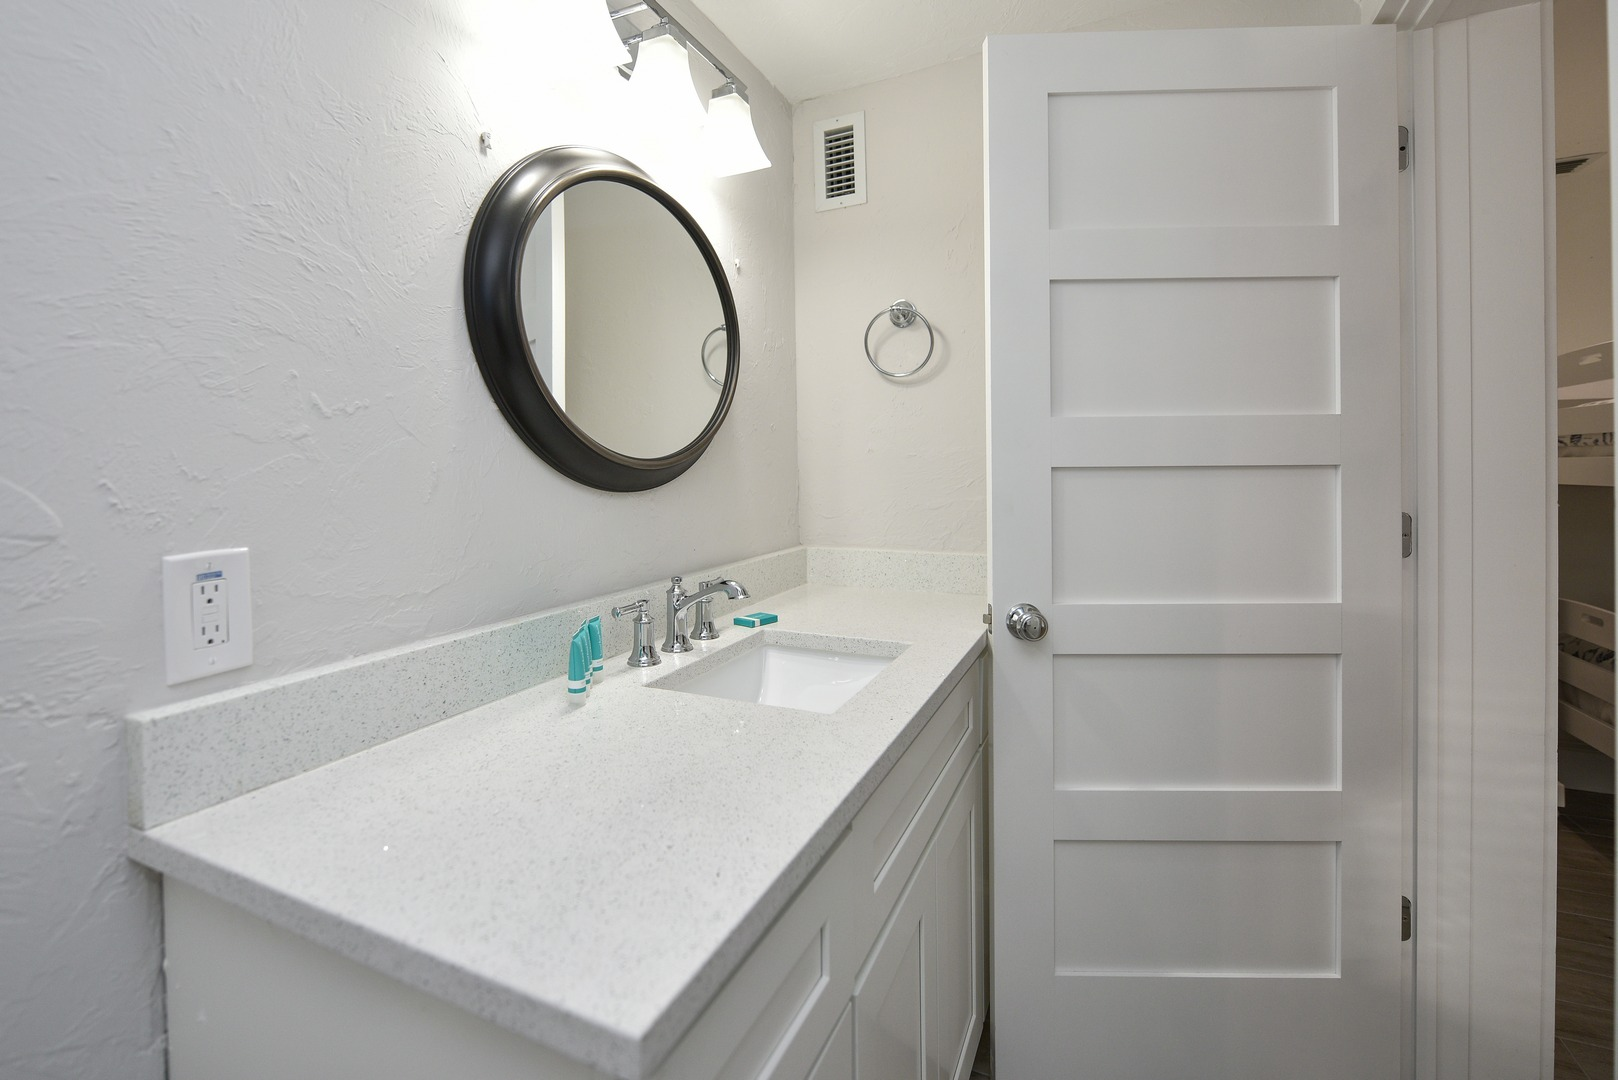 Large counter tops in bathroom